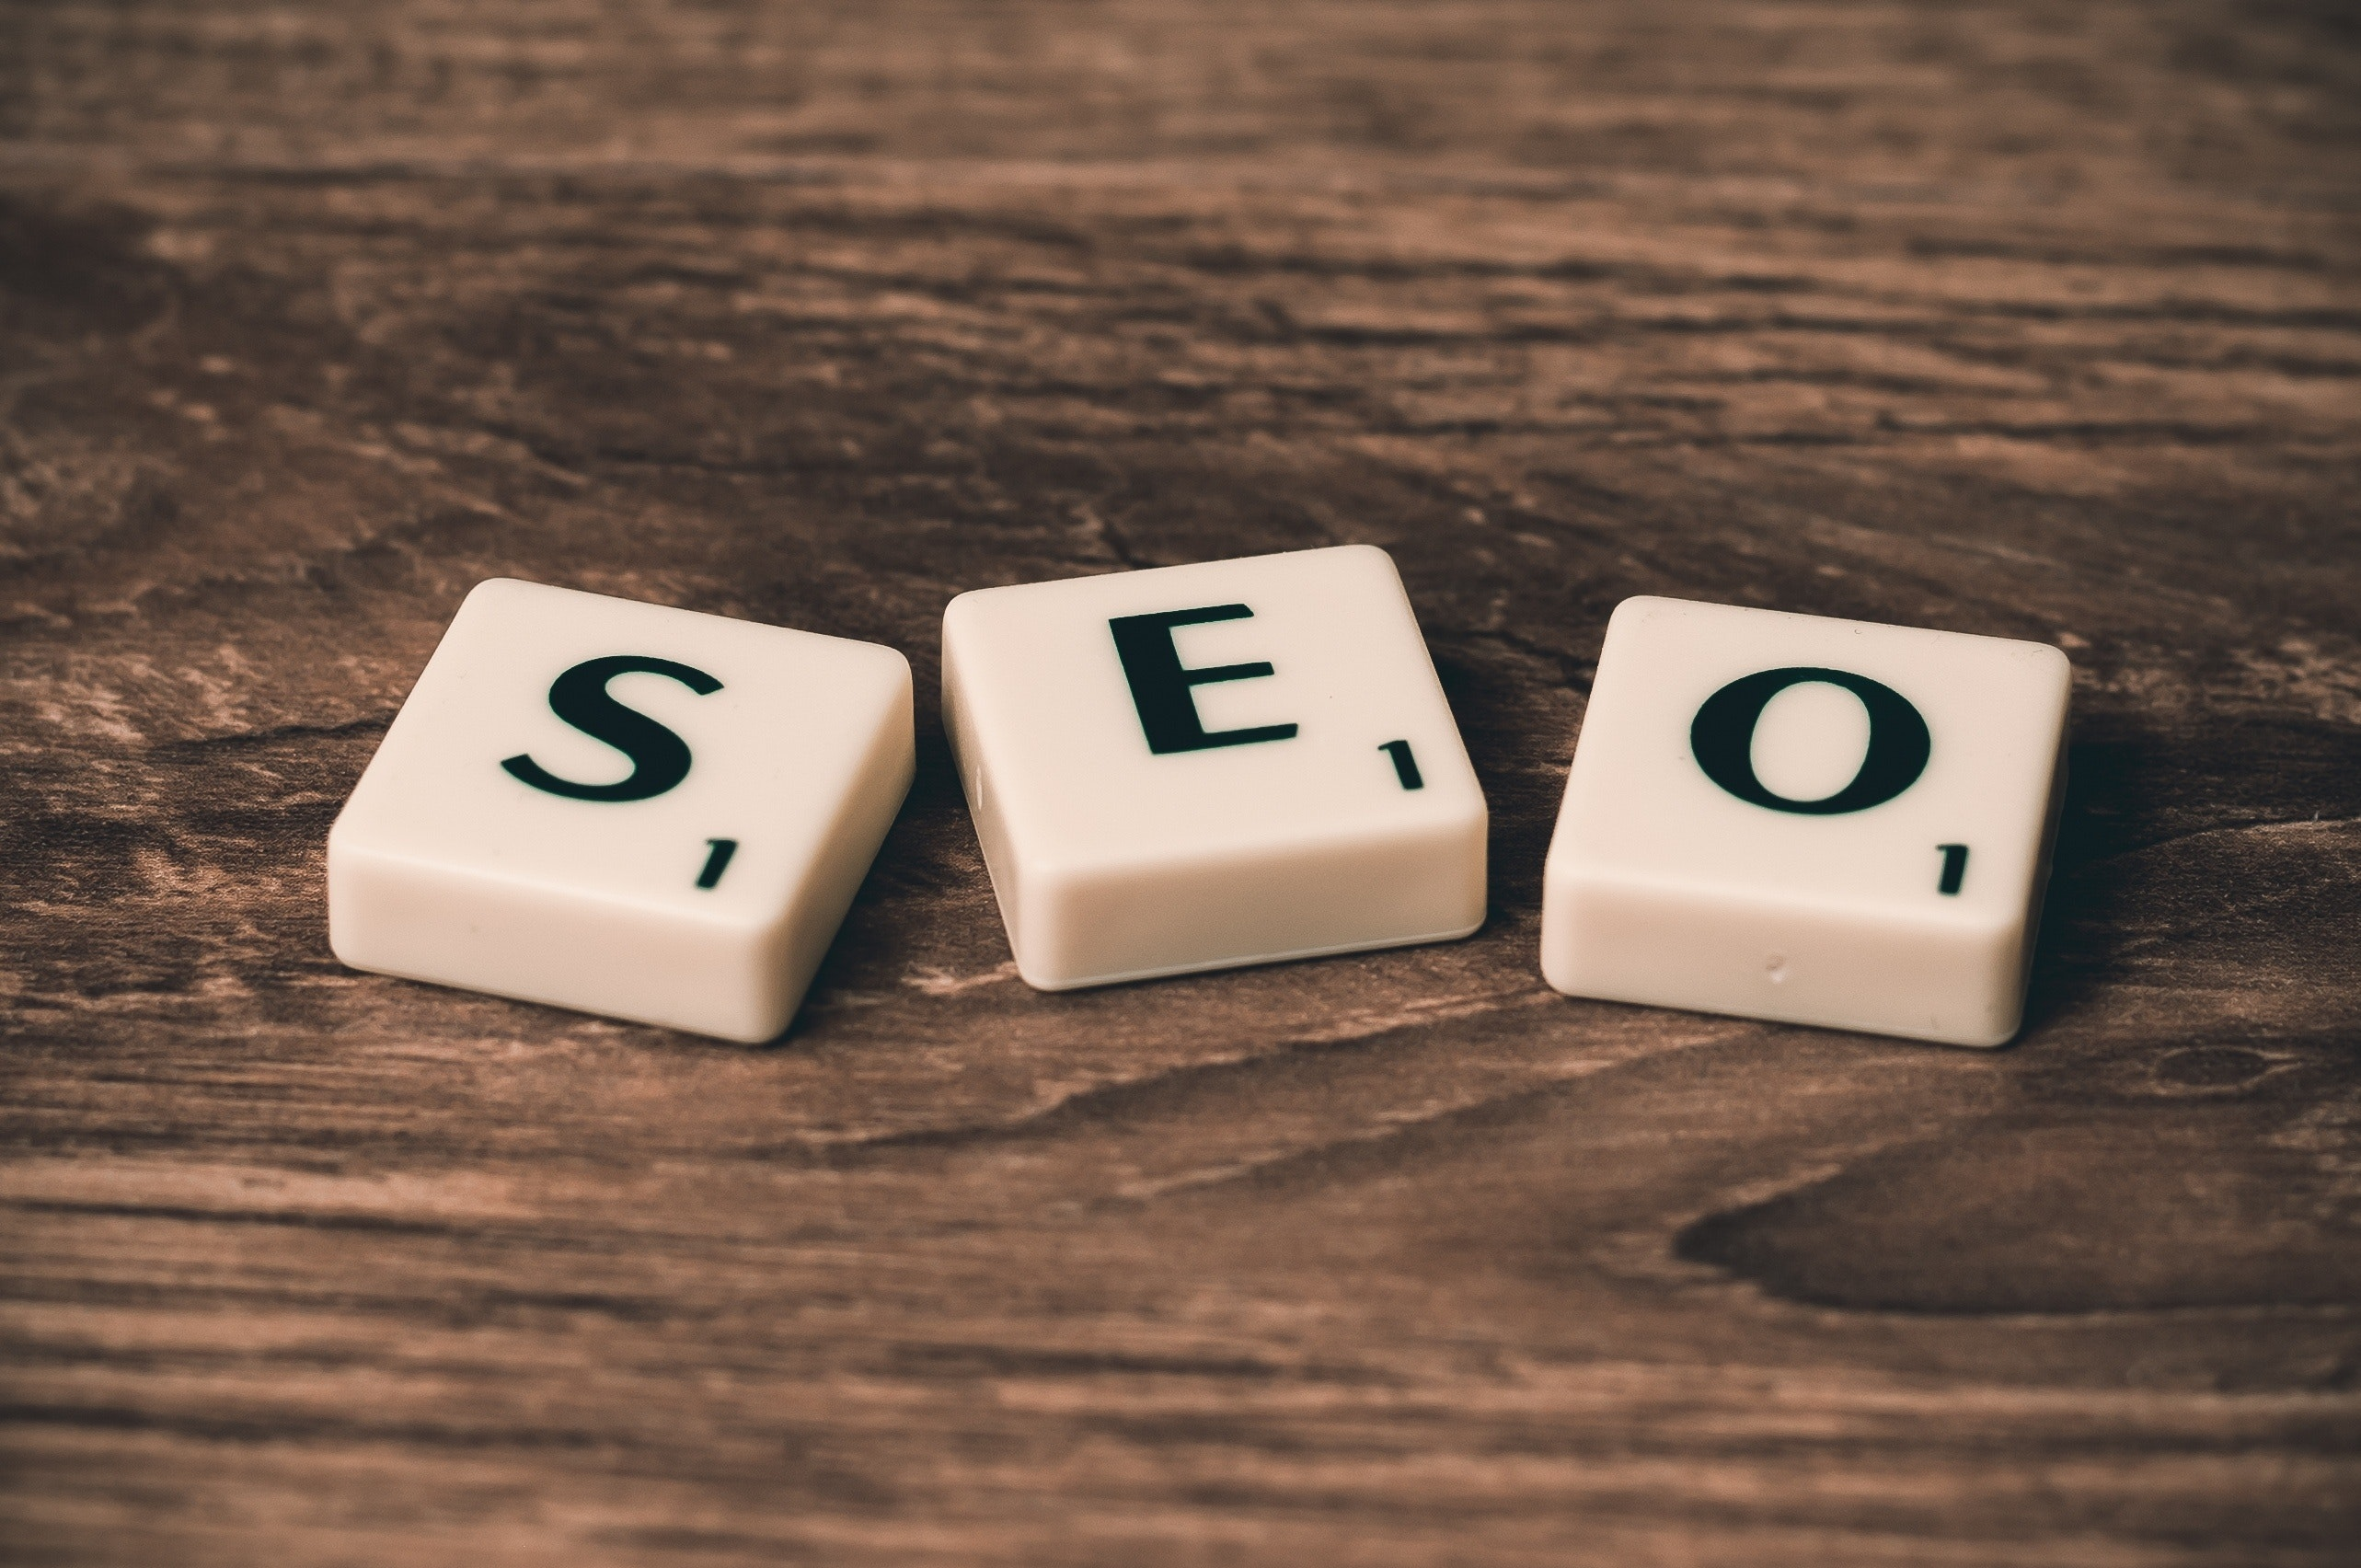 Word SEO has written on cubes on wooden background